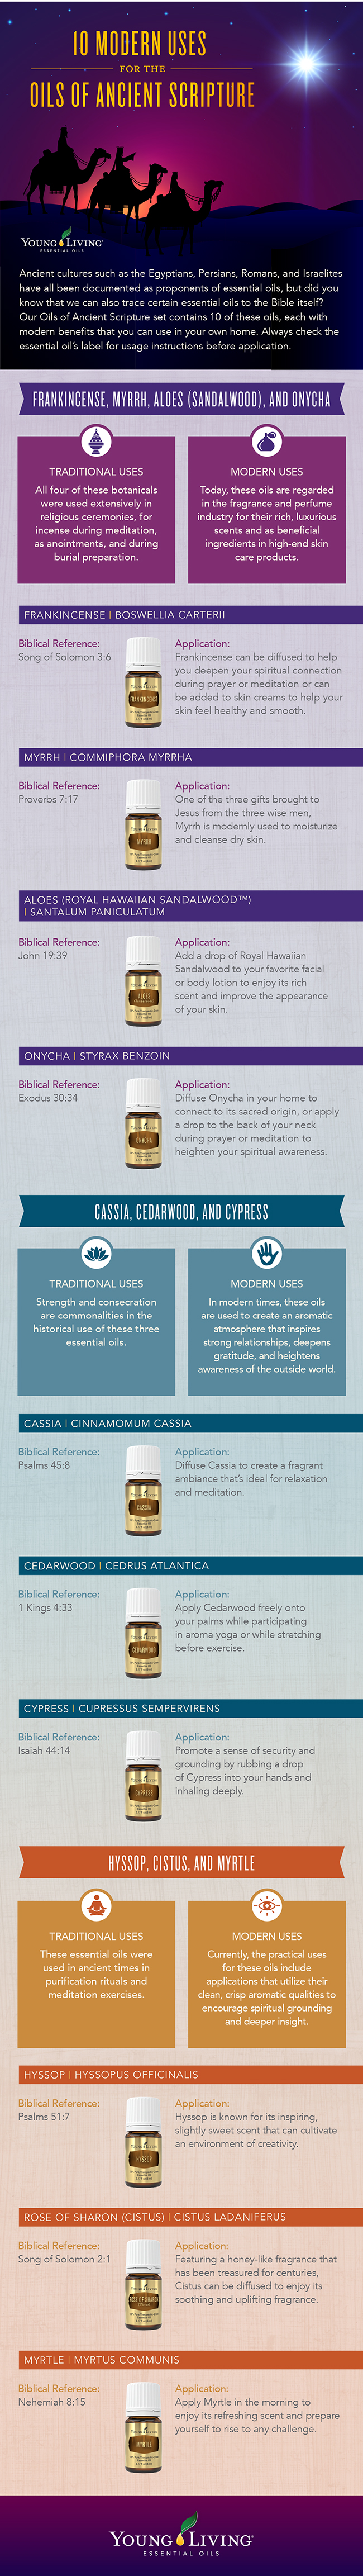 blog_BiblicalOils_infographic_US-With-the-Typo-Change